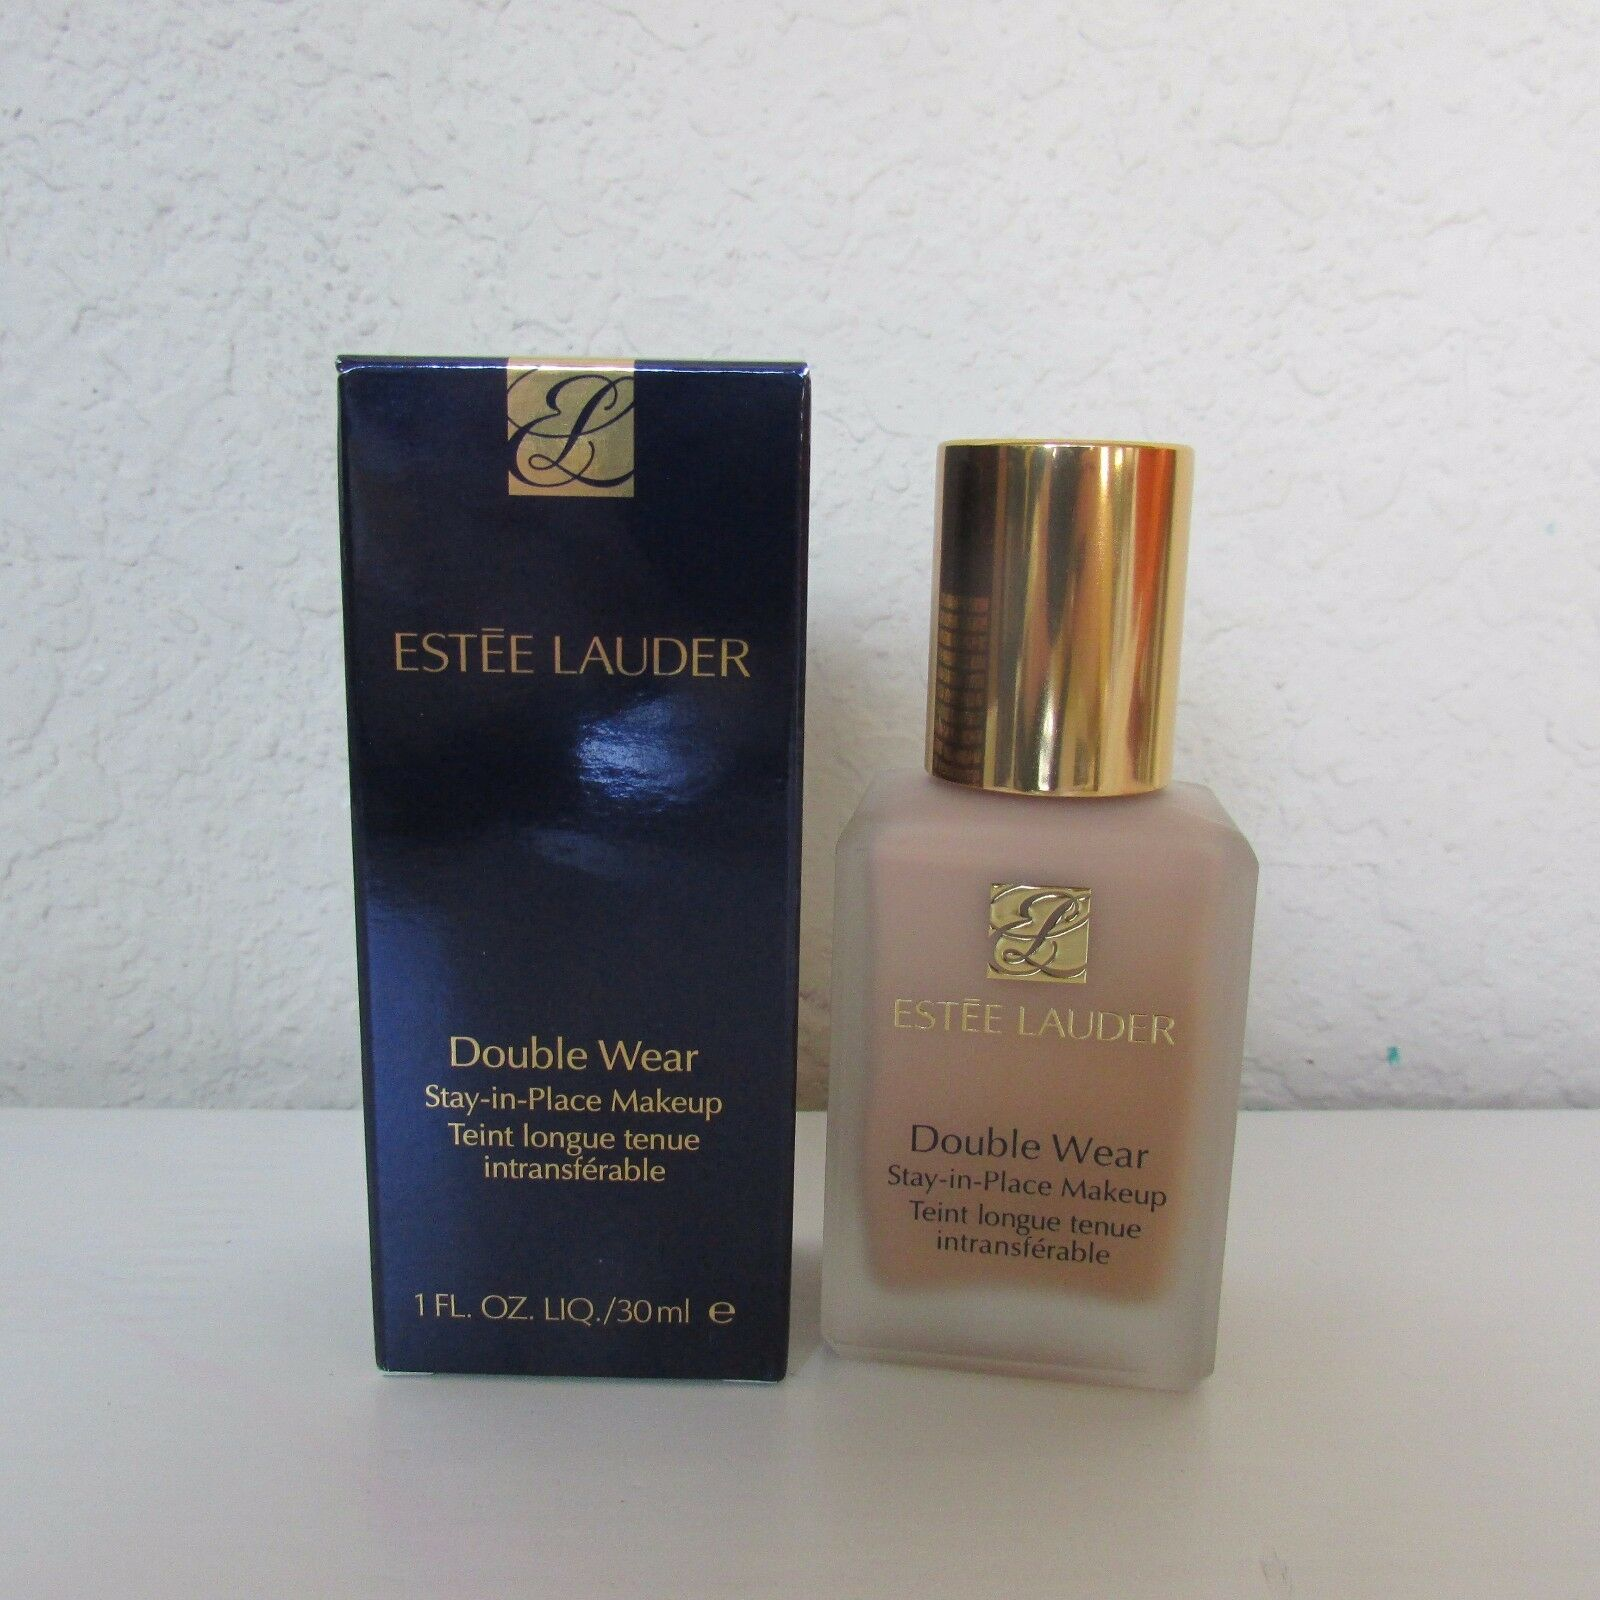 estee lauder double wear stay-... Image 3